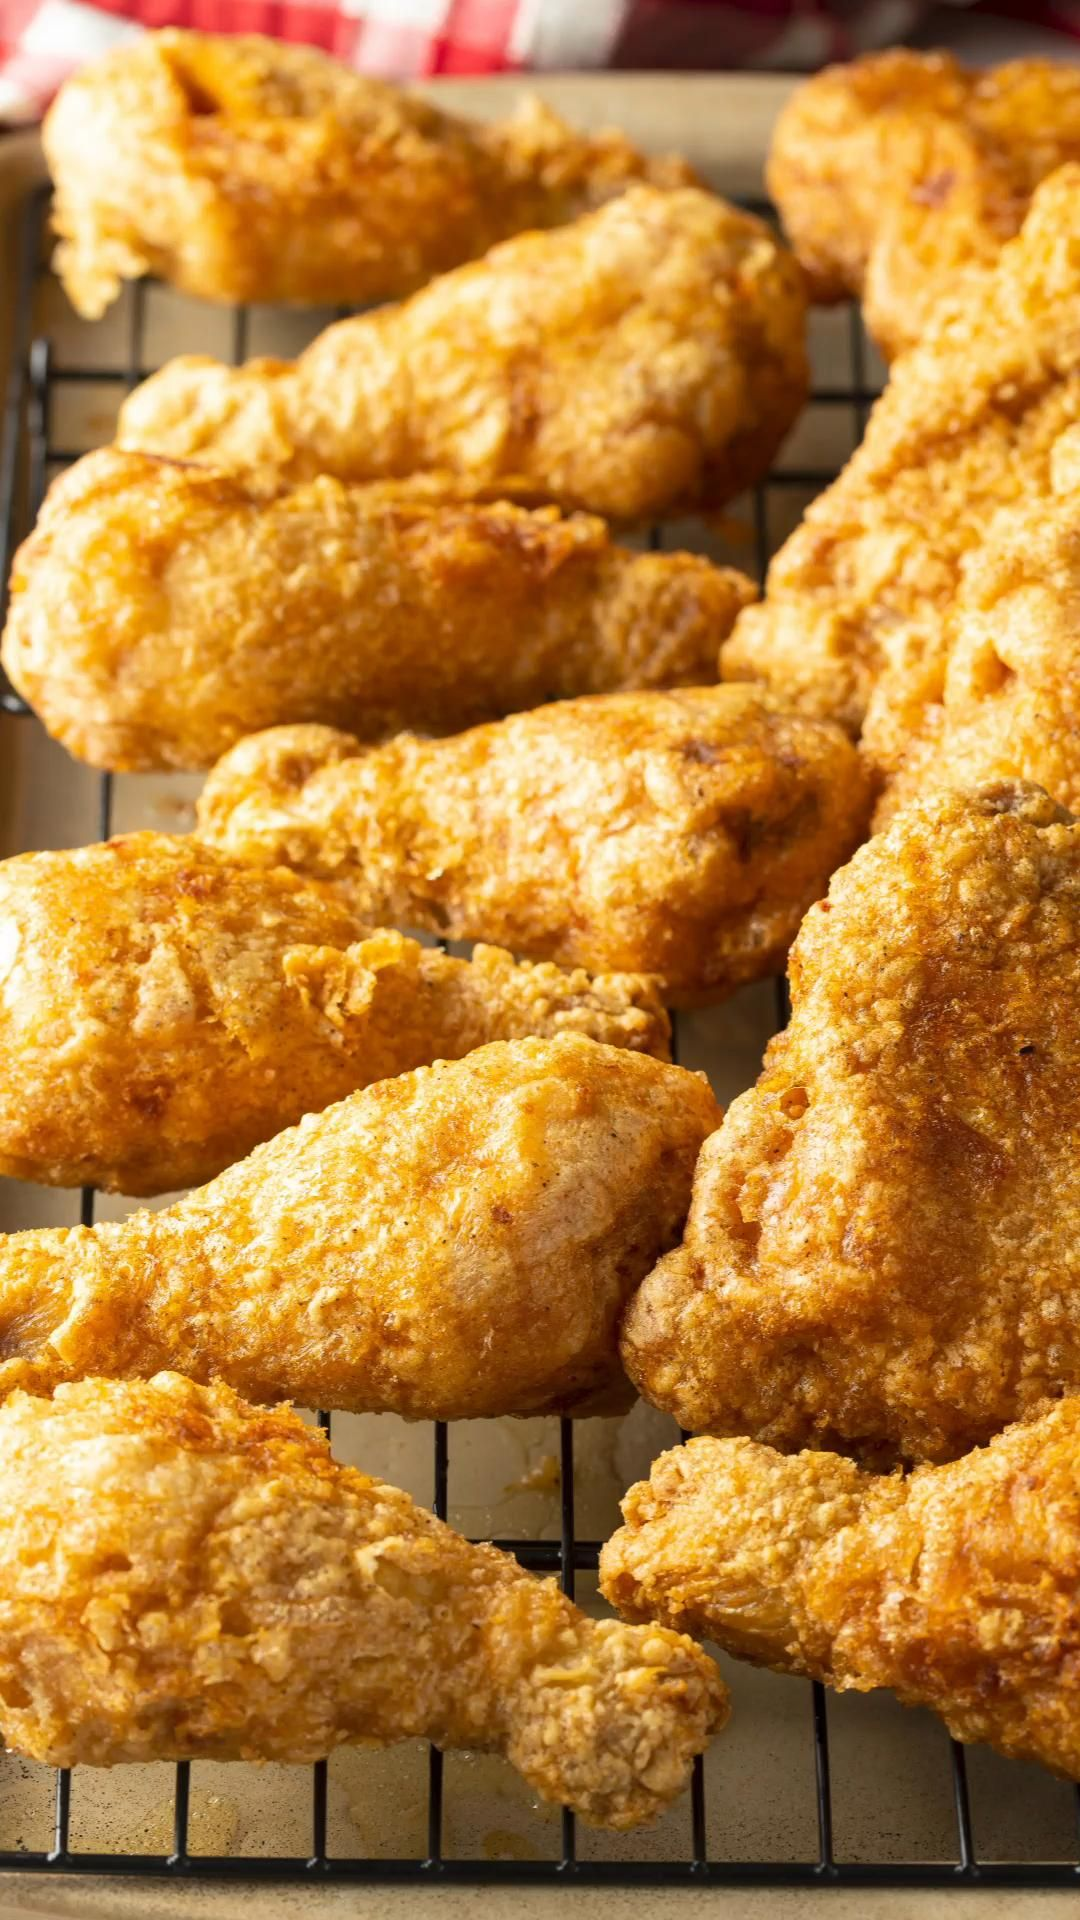 Tavern Fried Chicken Recipe Video In 2020 Best Fried Chicken Recipe Fried Chicken Recipes Cooking Fried Chicken